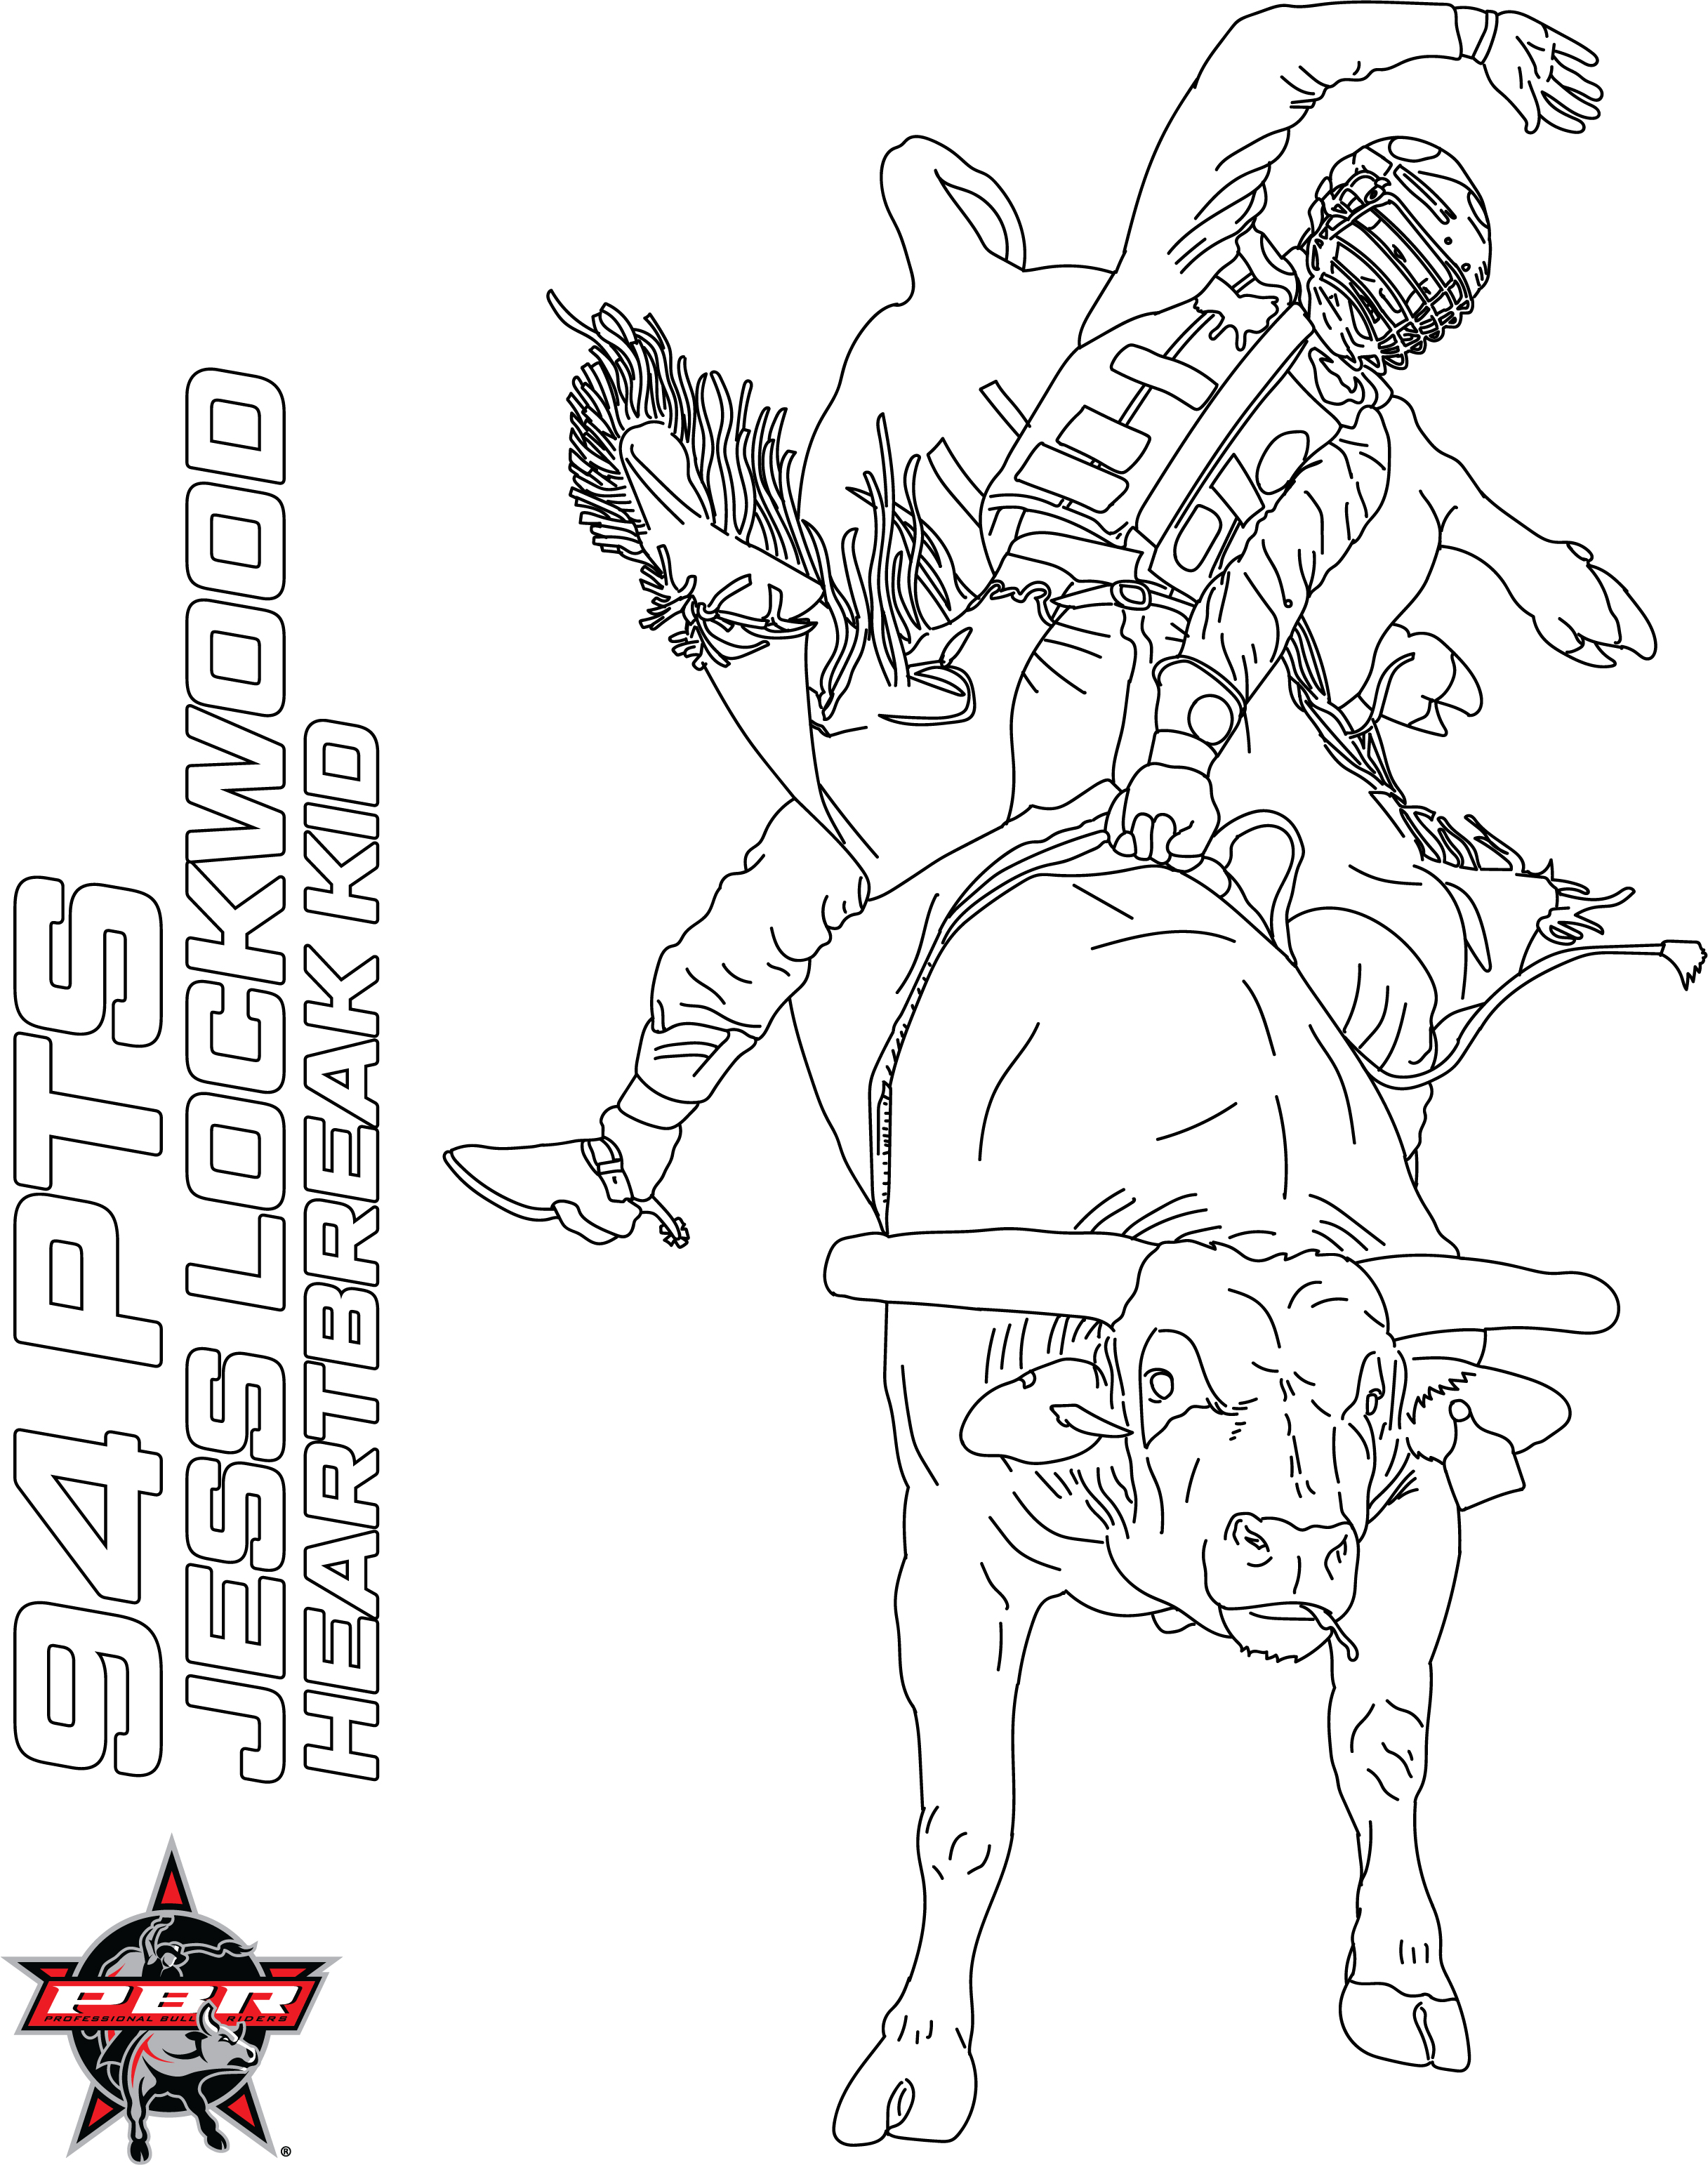 Bull Riding Rodeo coloring page | Free Printable Coloring Pages ... | 3084x2433